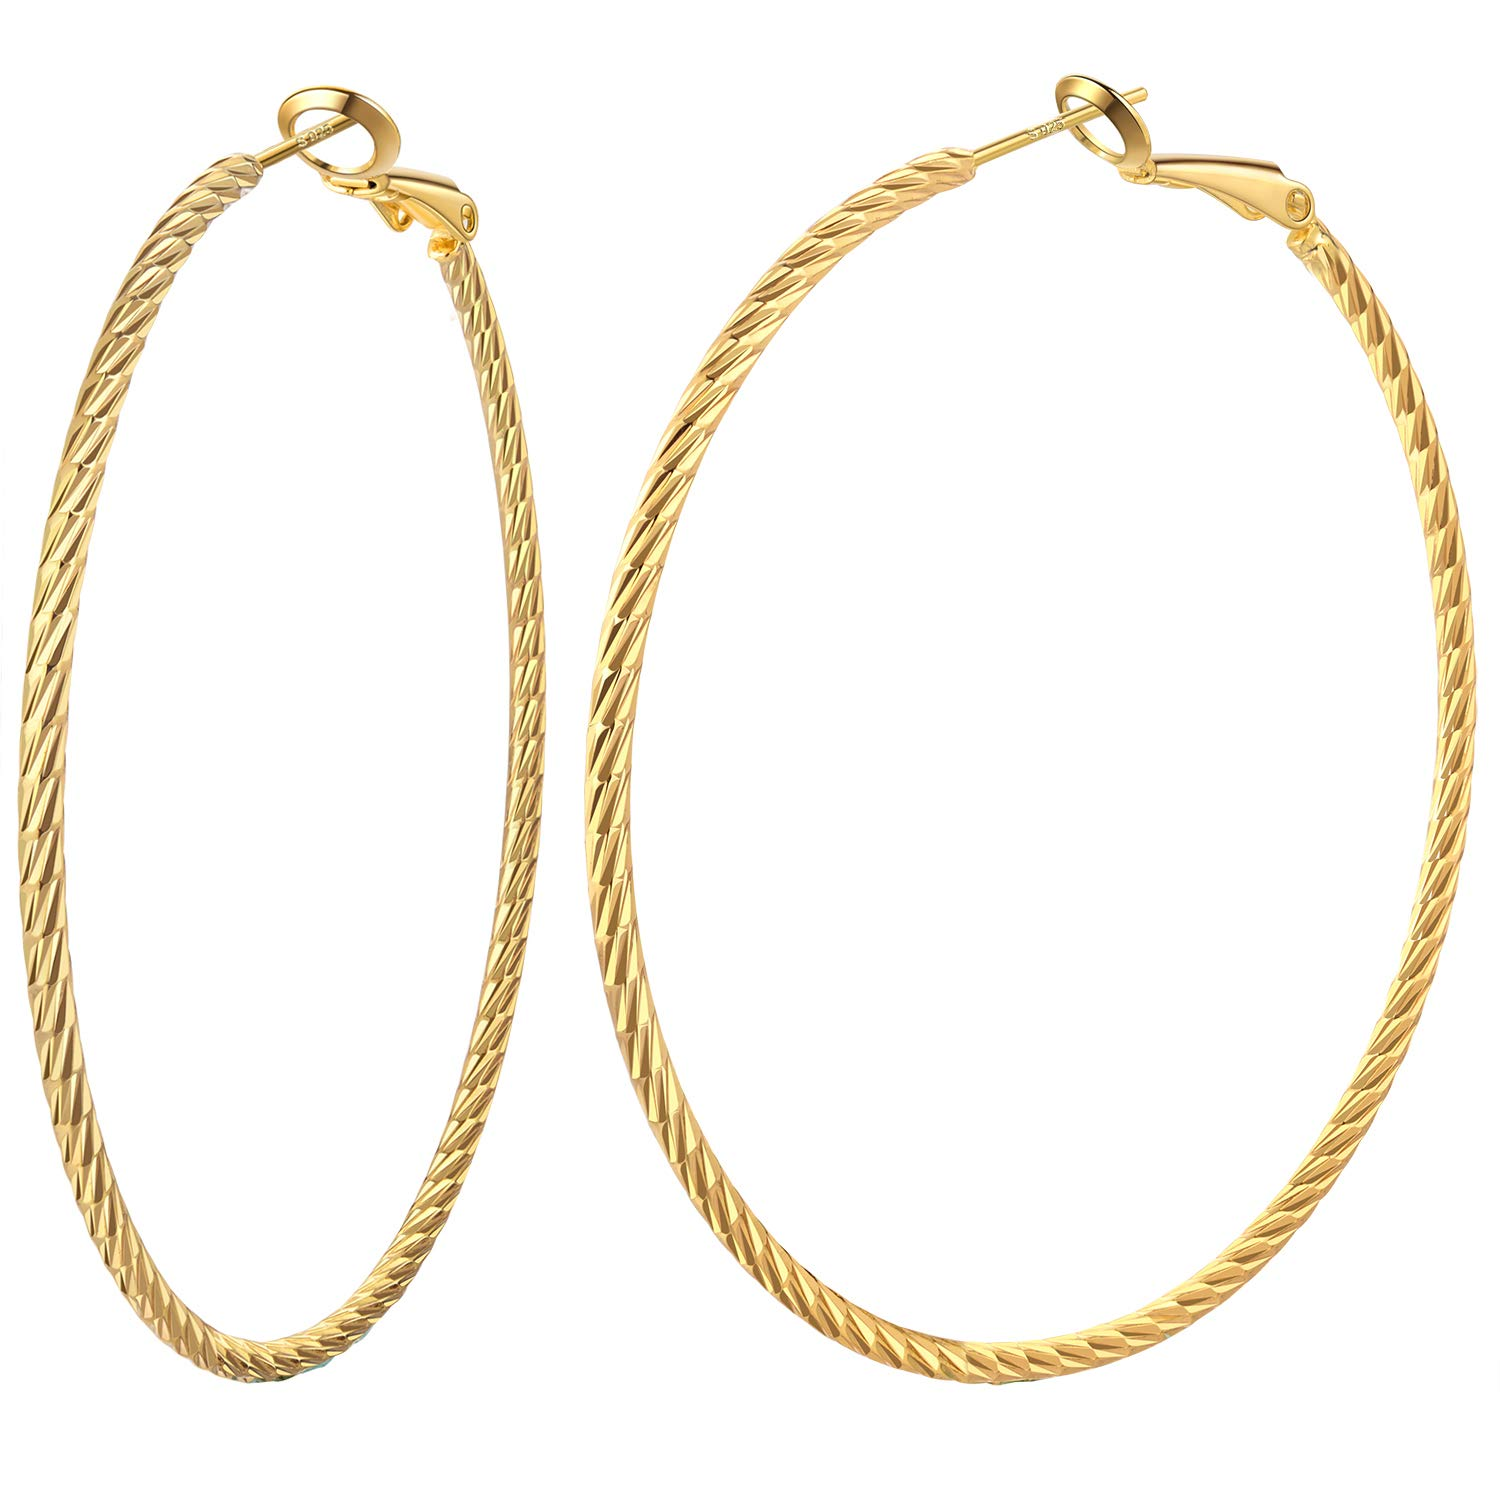 Big Hoop Earrings for Women Sterling Silver Post 14K Gold Plated 60mm Twisted Spiral Style Hoops Loop Earrings Valuable Gift to Girls